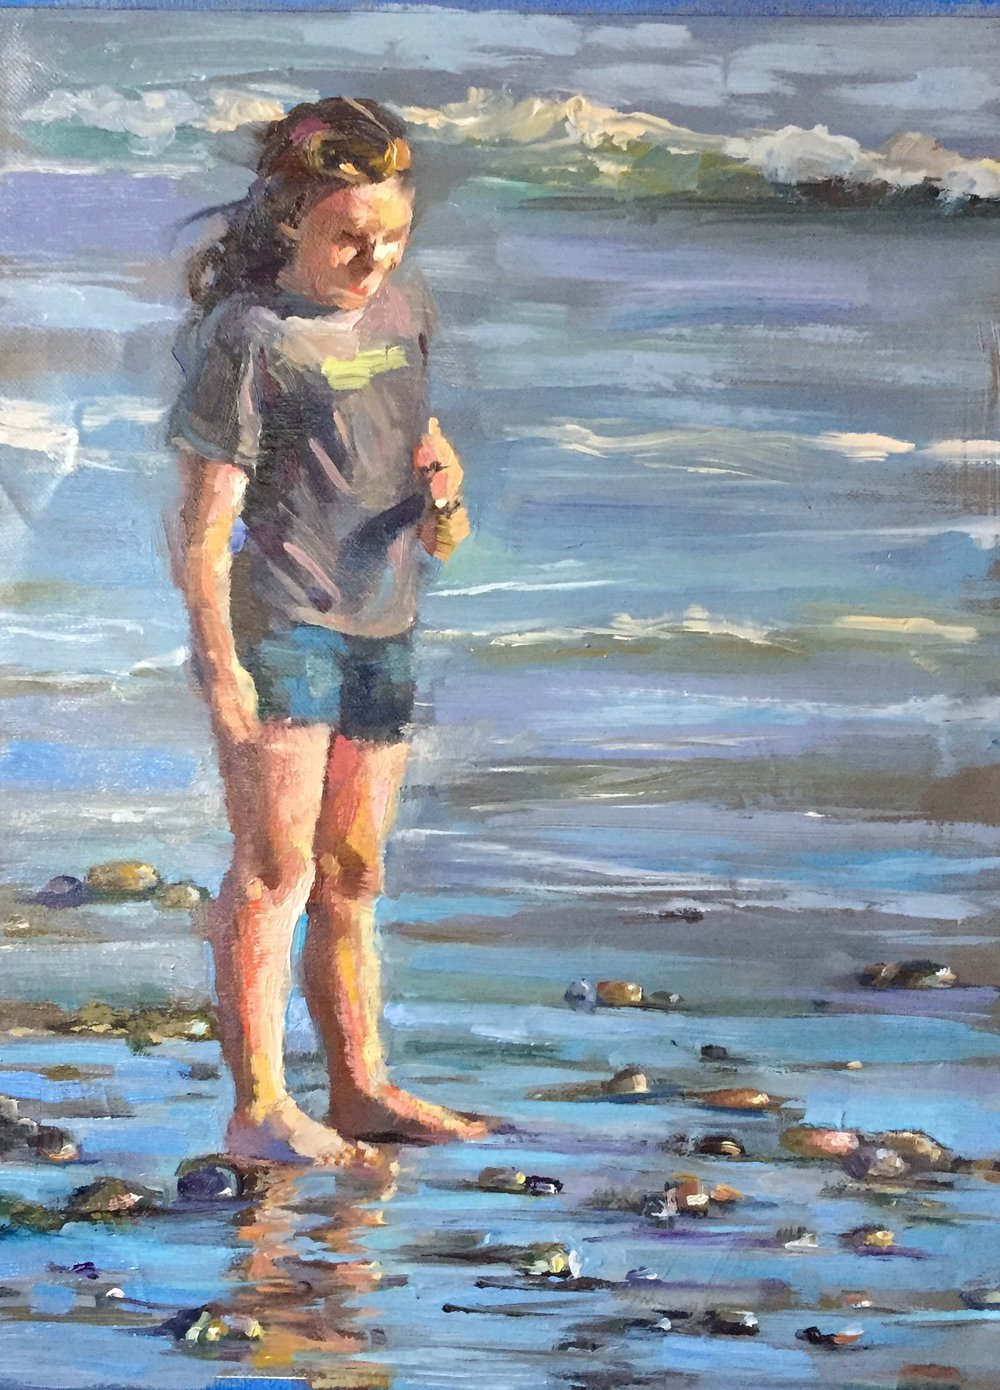 Stone Collector 9x12, Gallery at Firehouse Square, oil on linen $350.